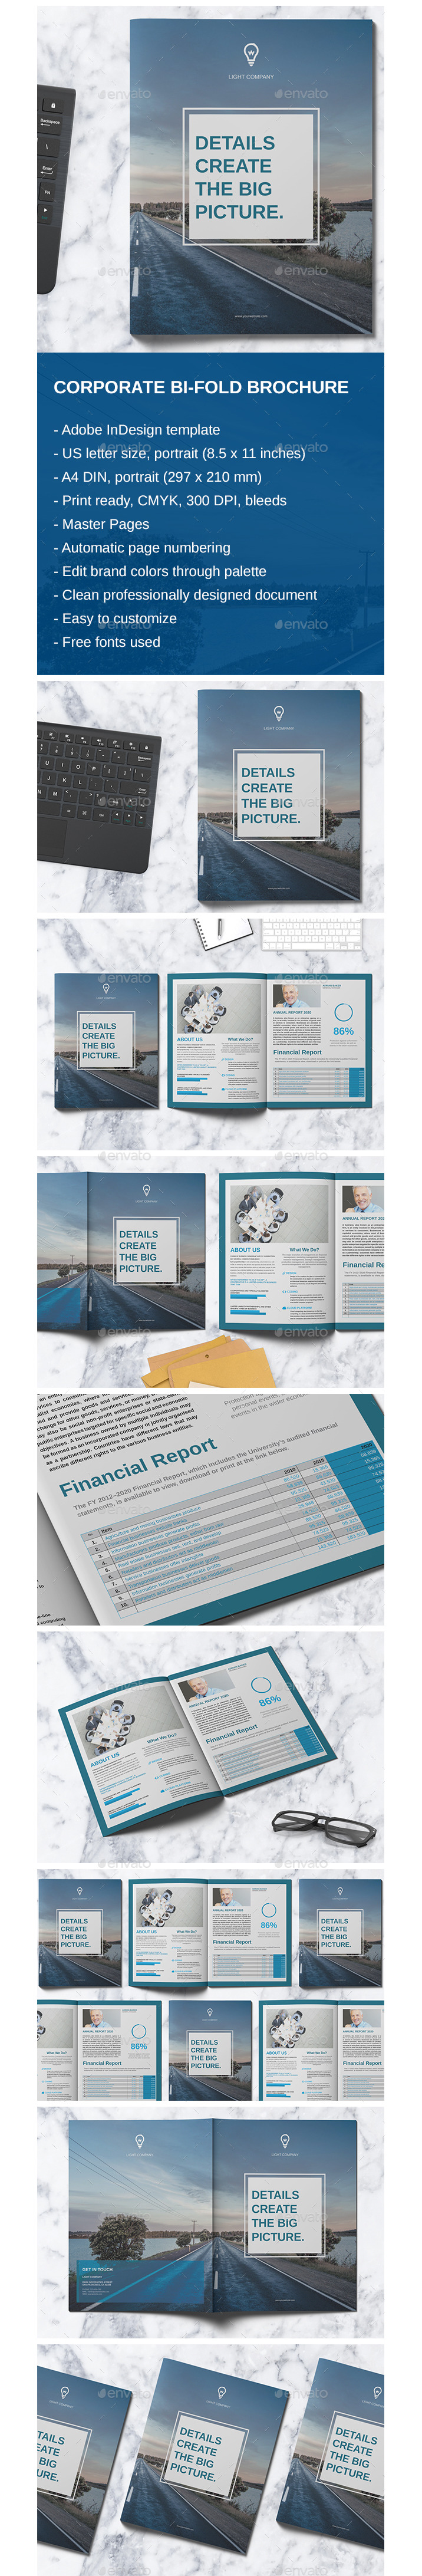 graphicriver_corporate_bi_fold_brochure_18513772